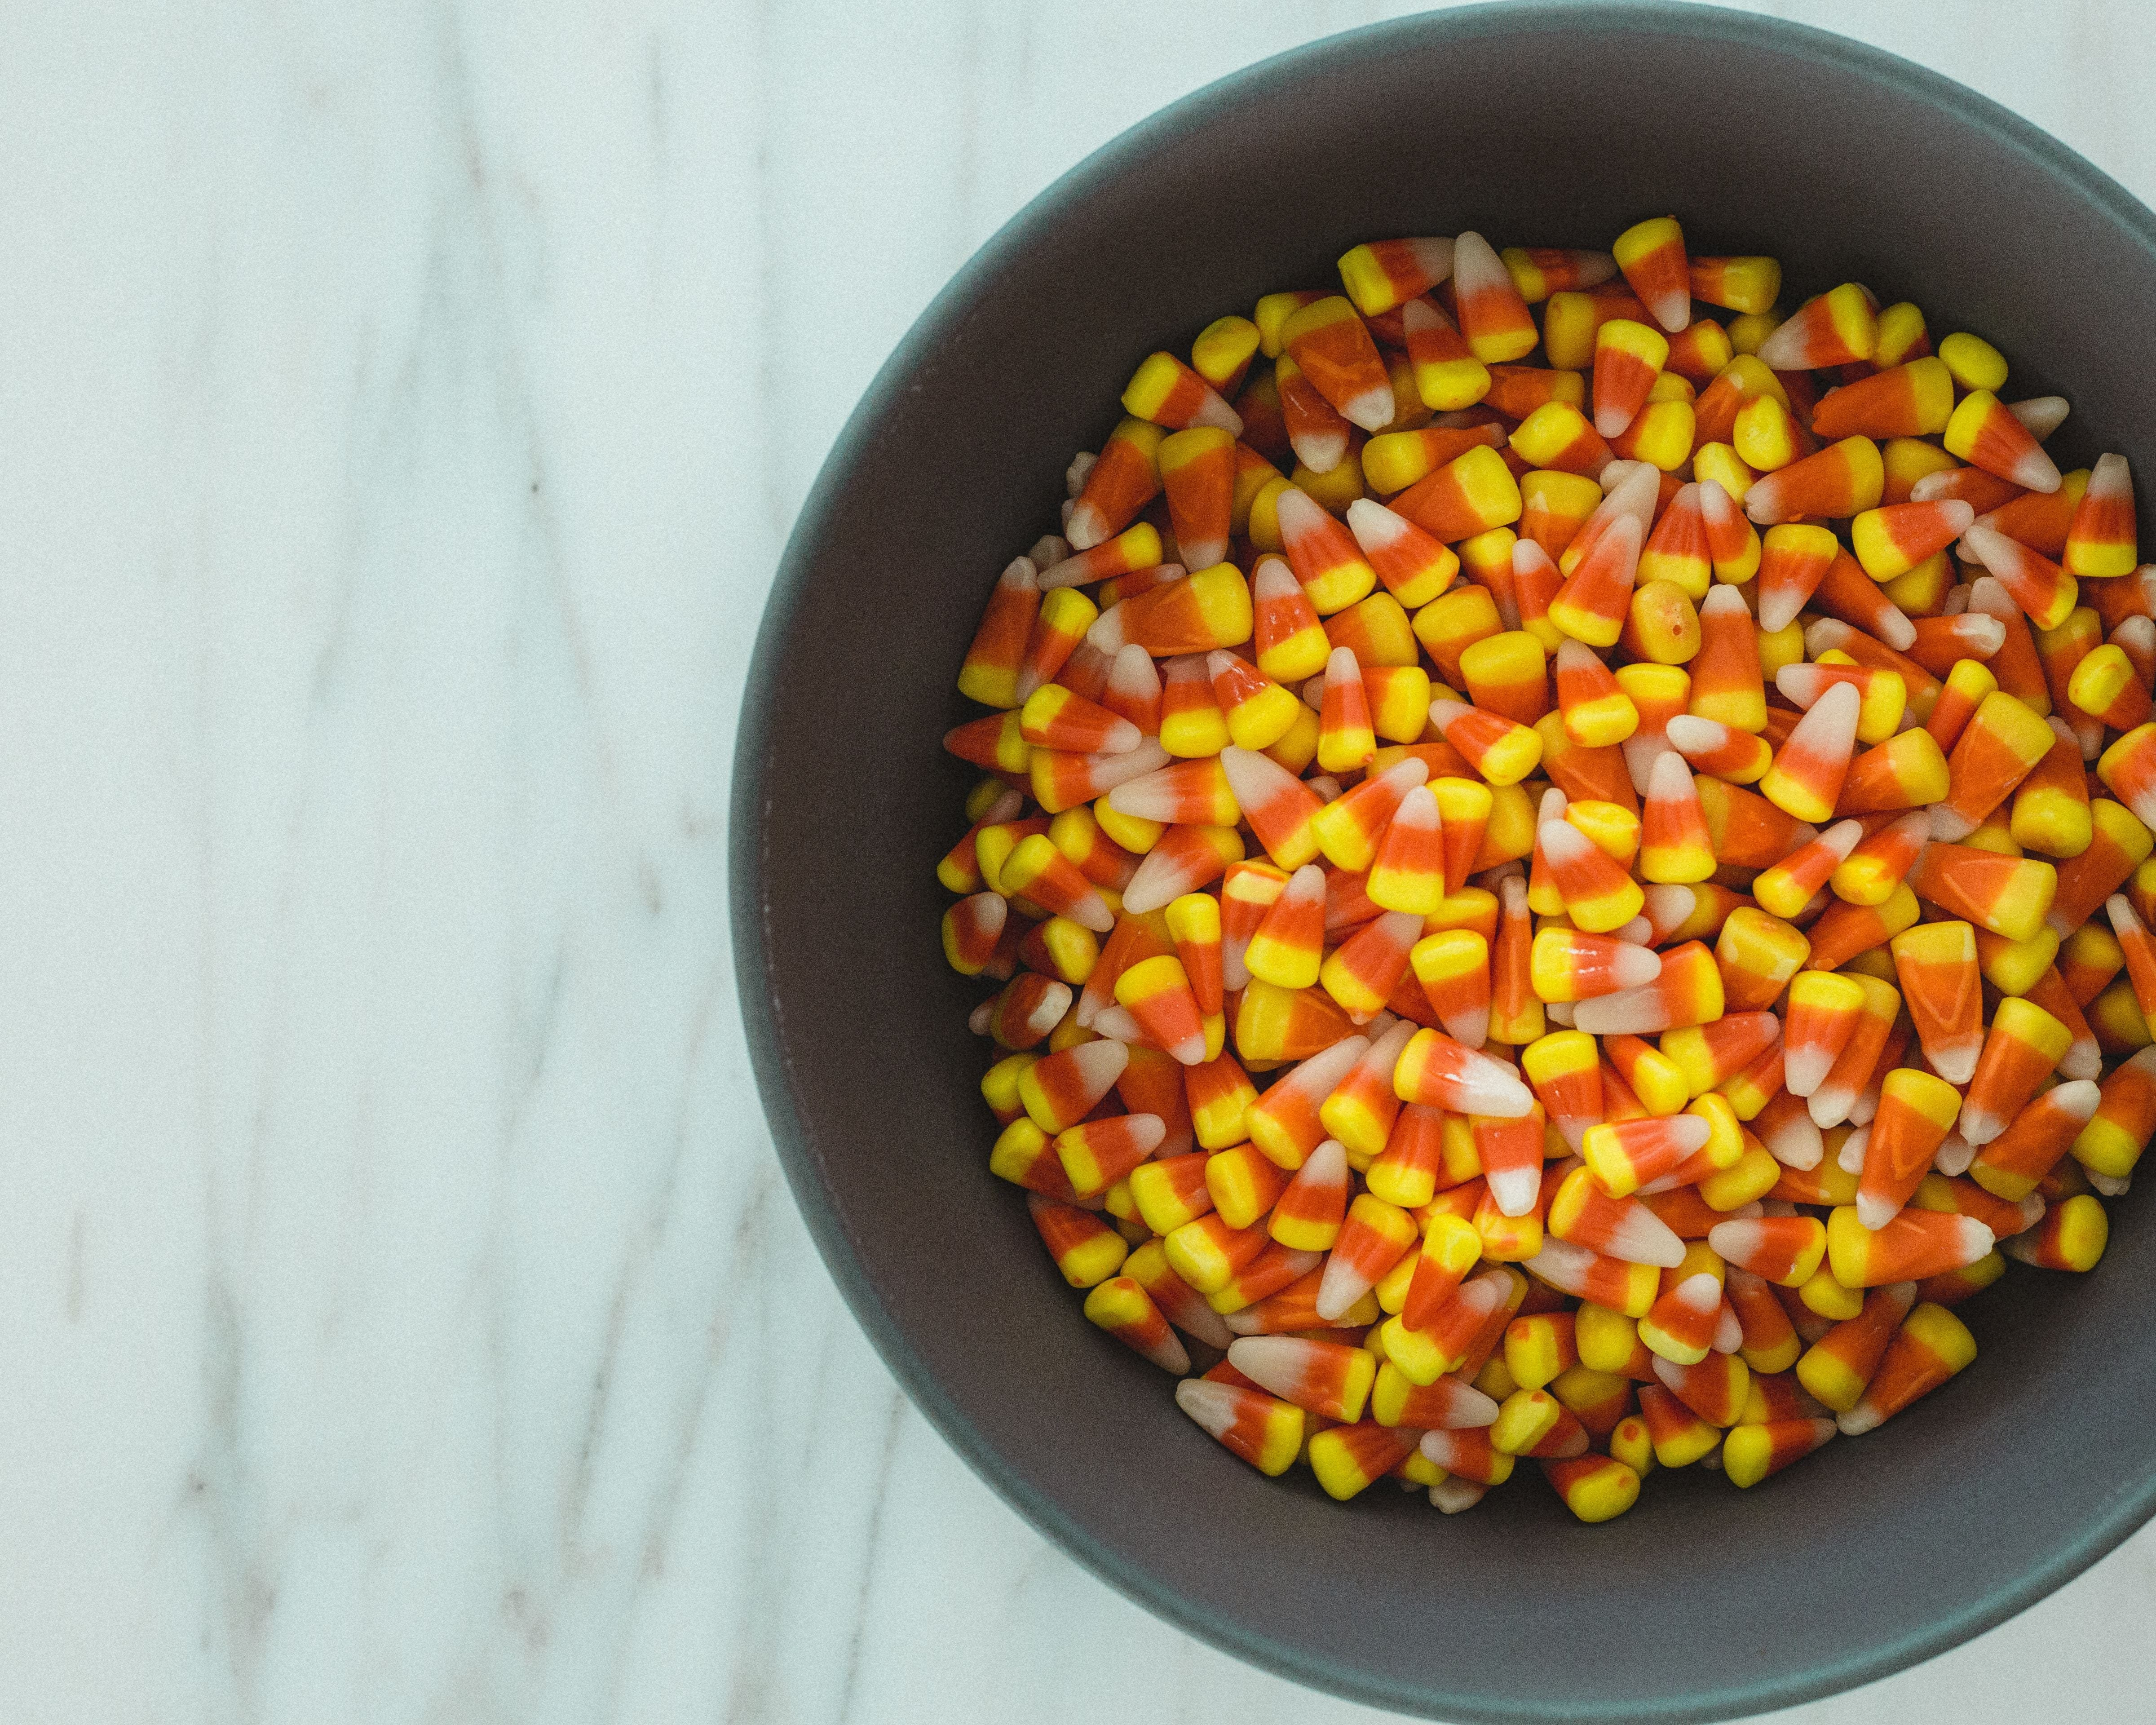 candy corn in a dark grey bowl on a marble counter top